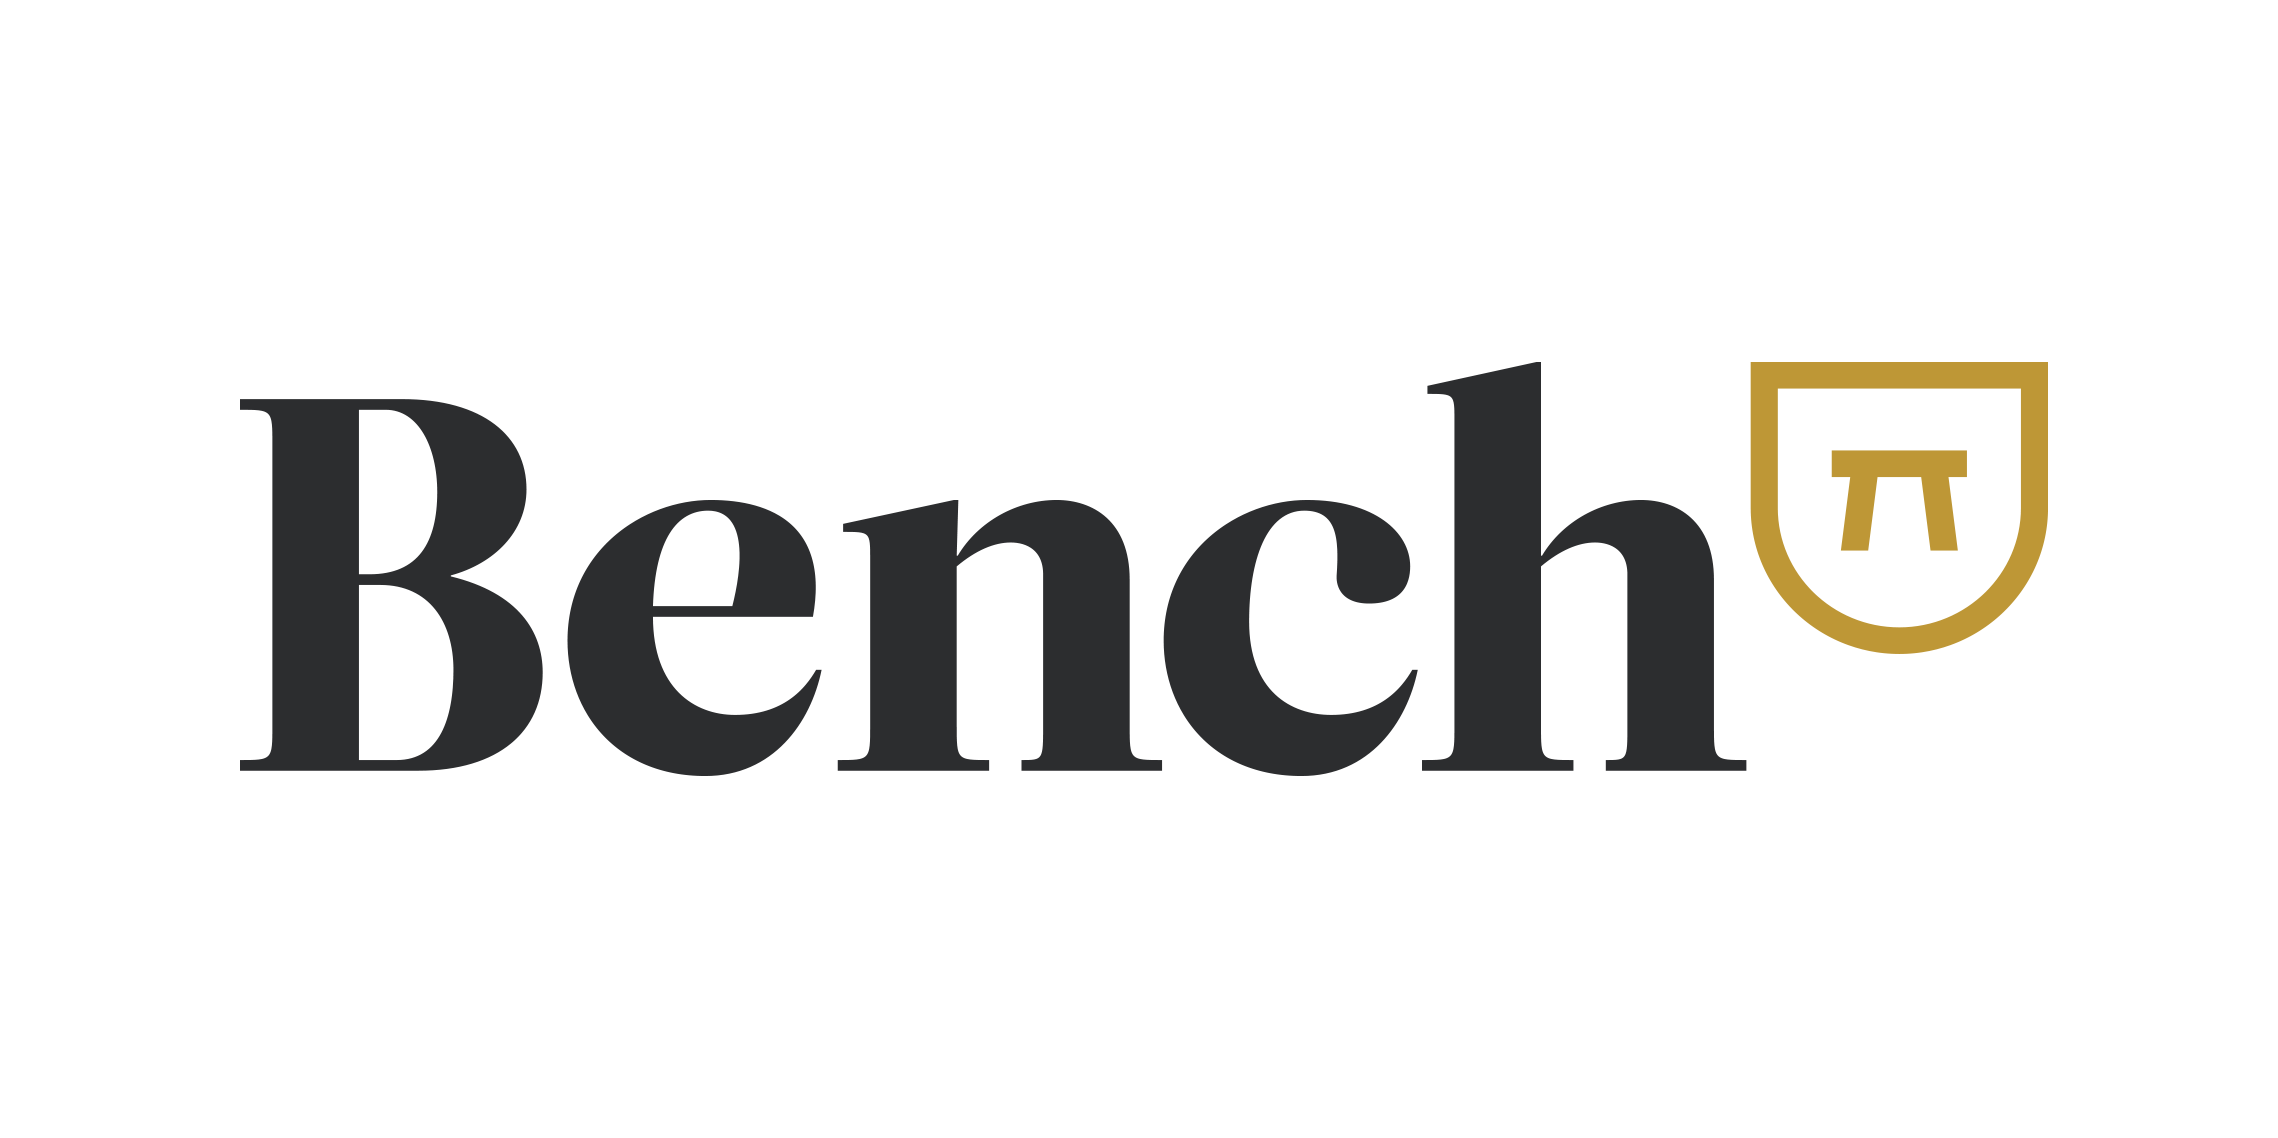 Рекомендации Bench Accounting